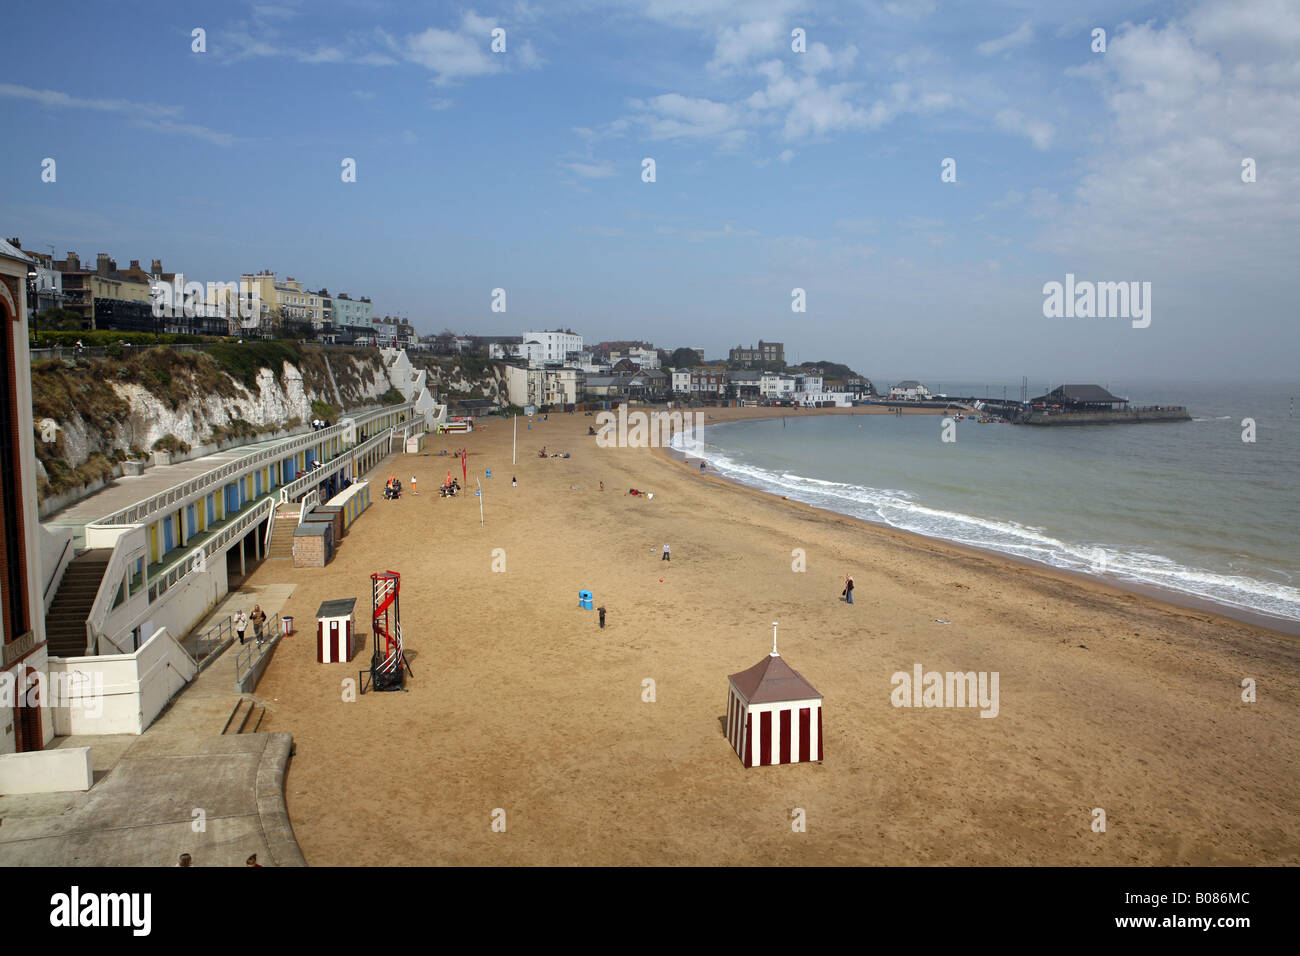 Pic By Paul Grover Pic Shows Viking Bay in Broadstairs on the Kent Coast - Stock Image